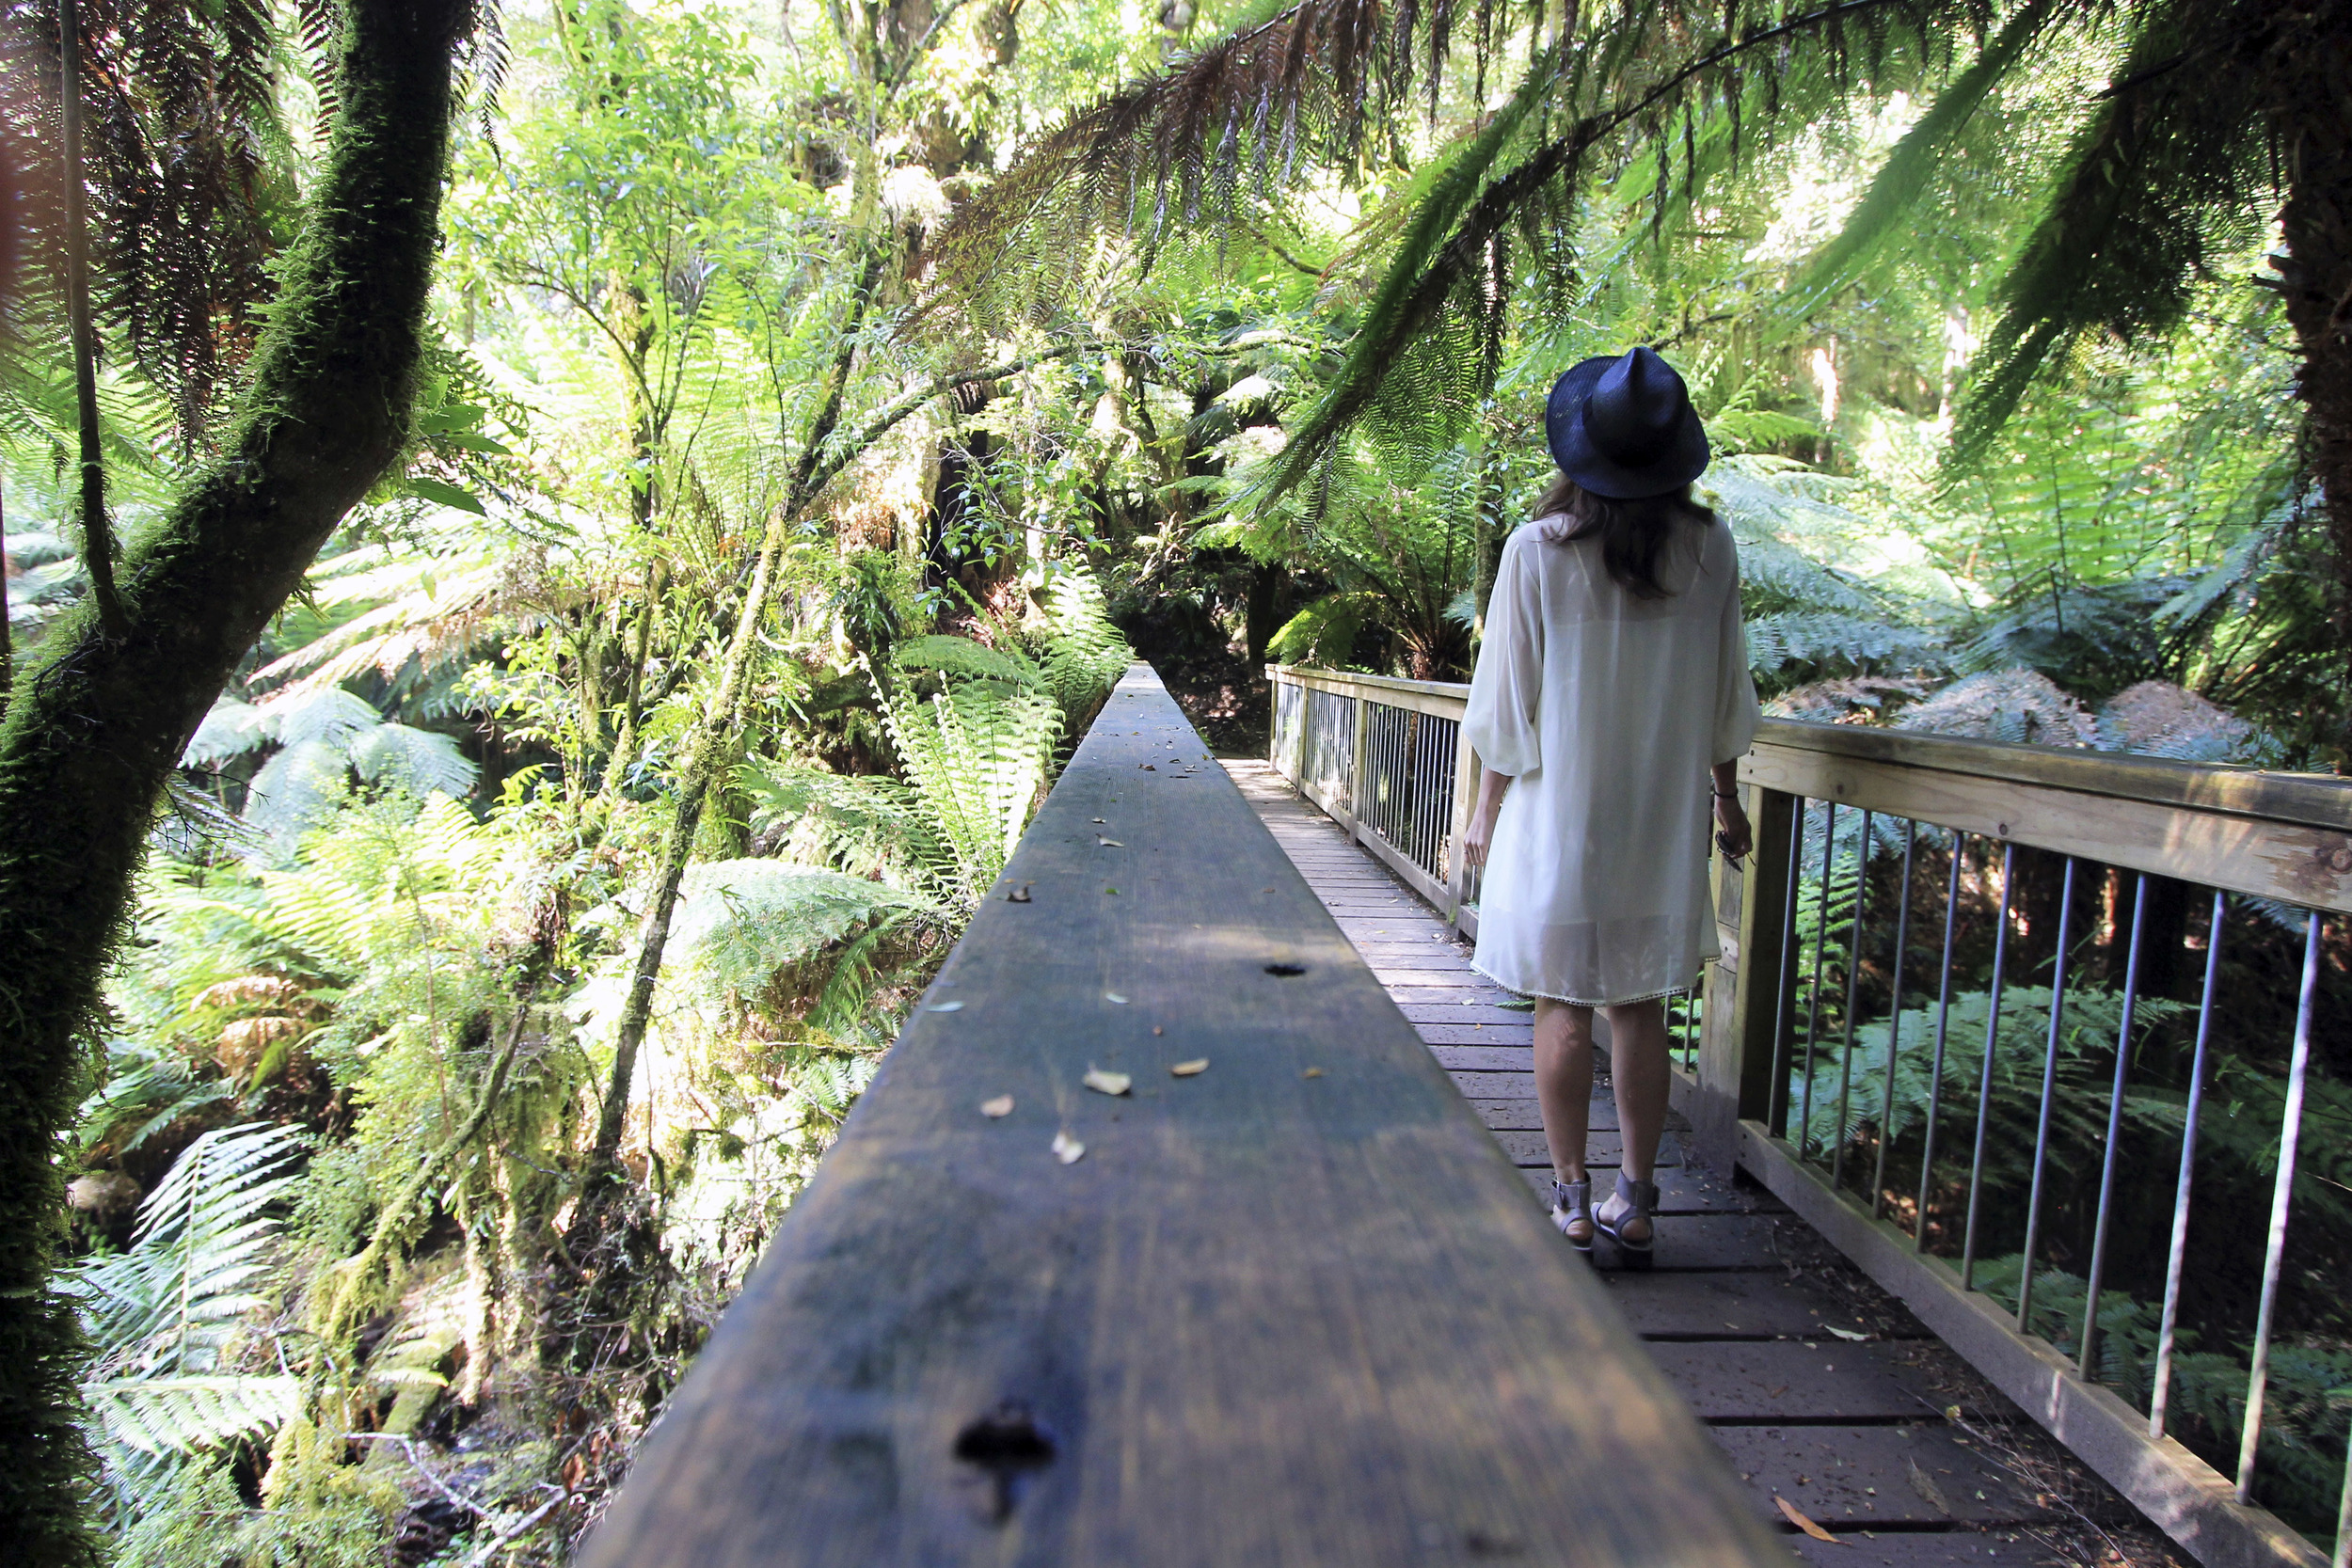 bridge-outfit-style-great-otway-national-park-ferns.jpg